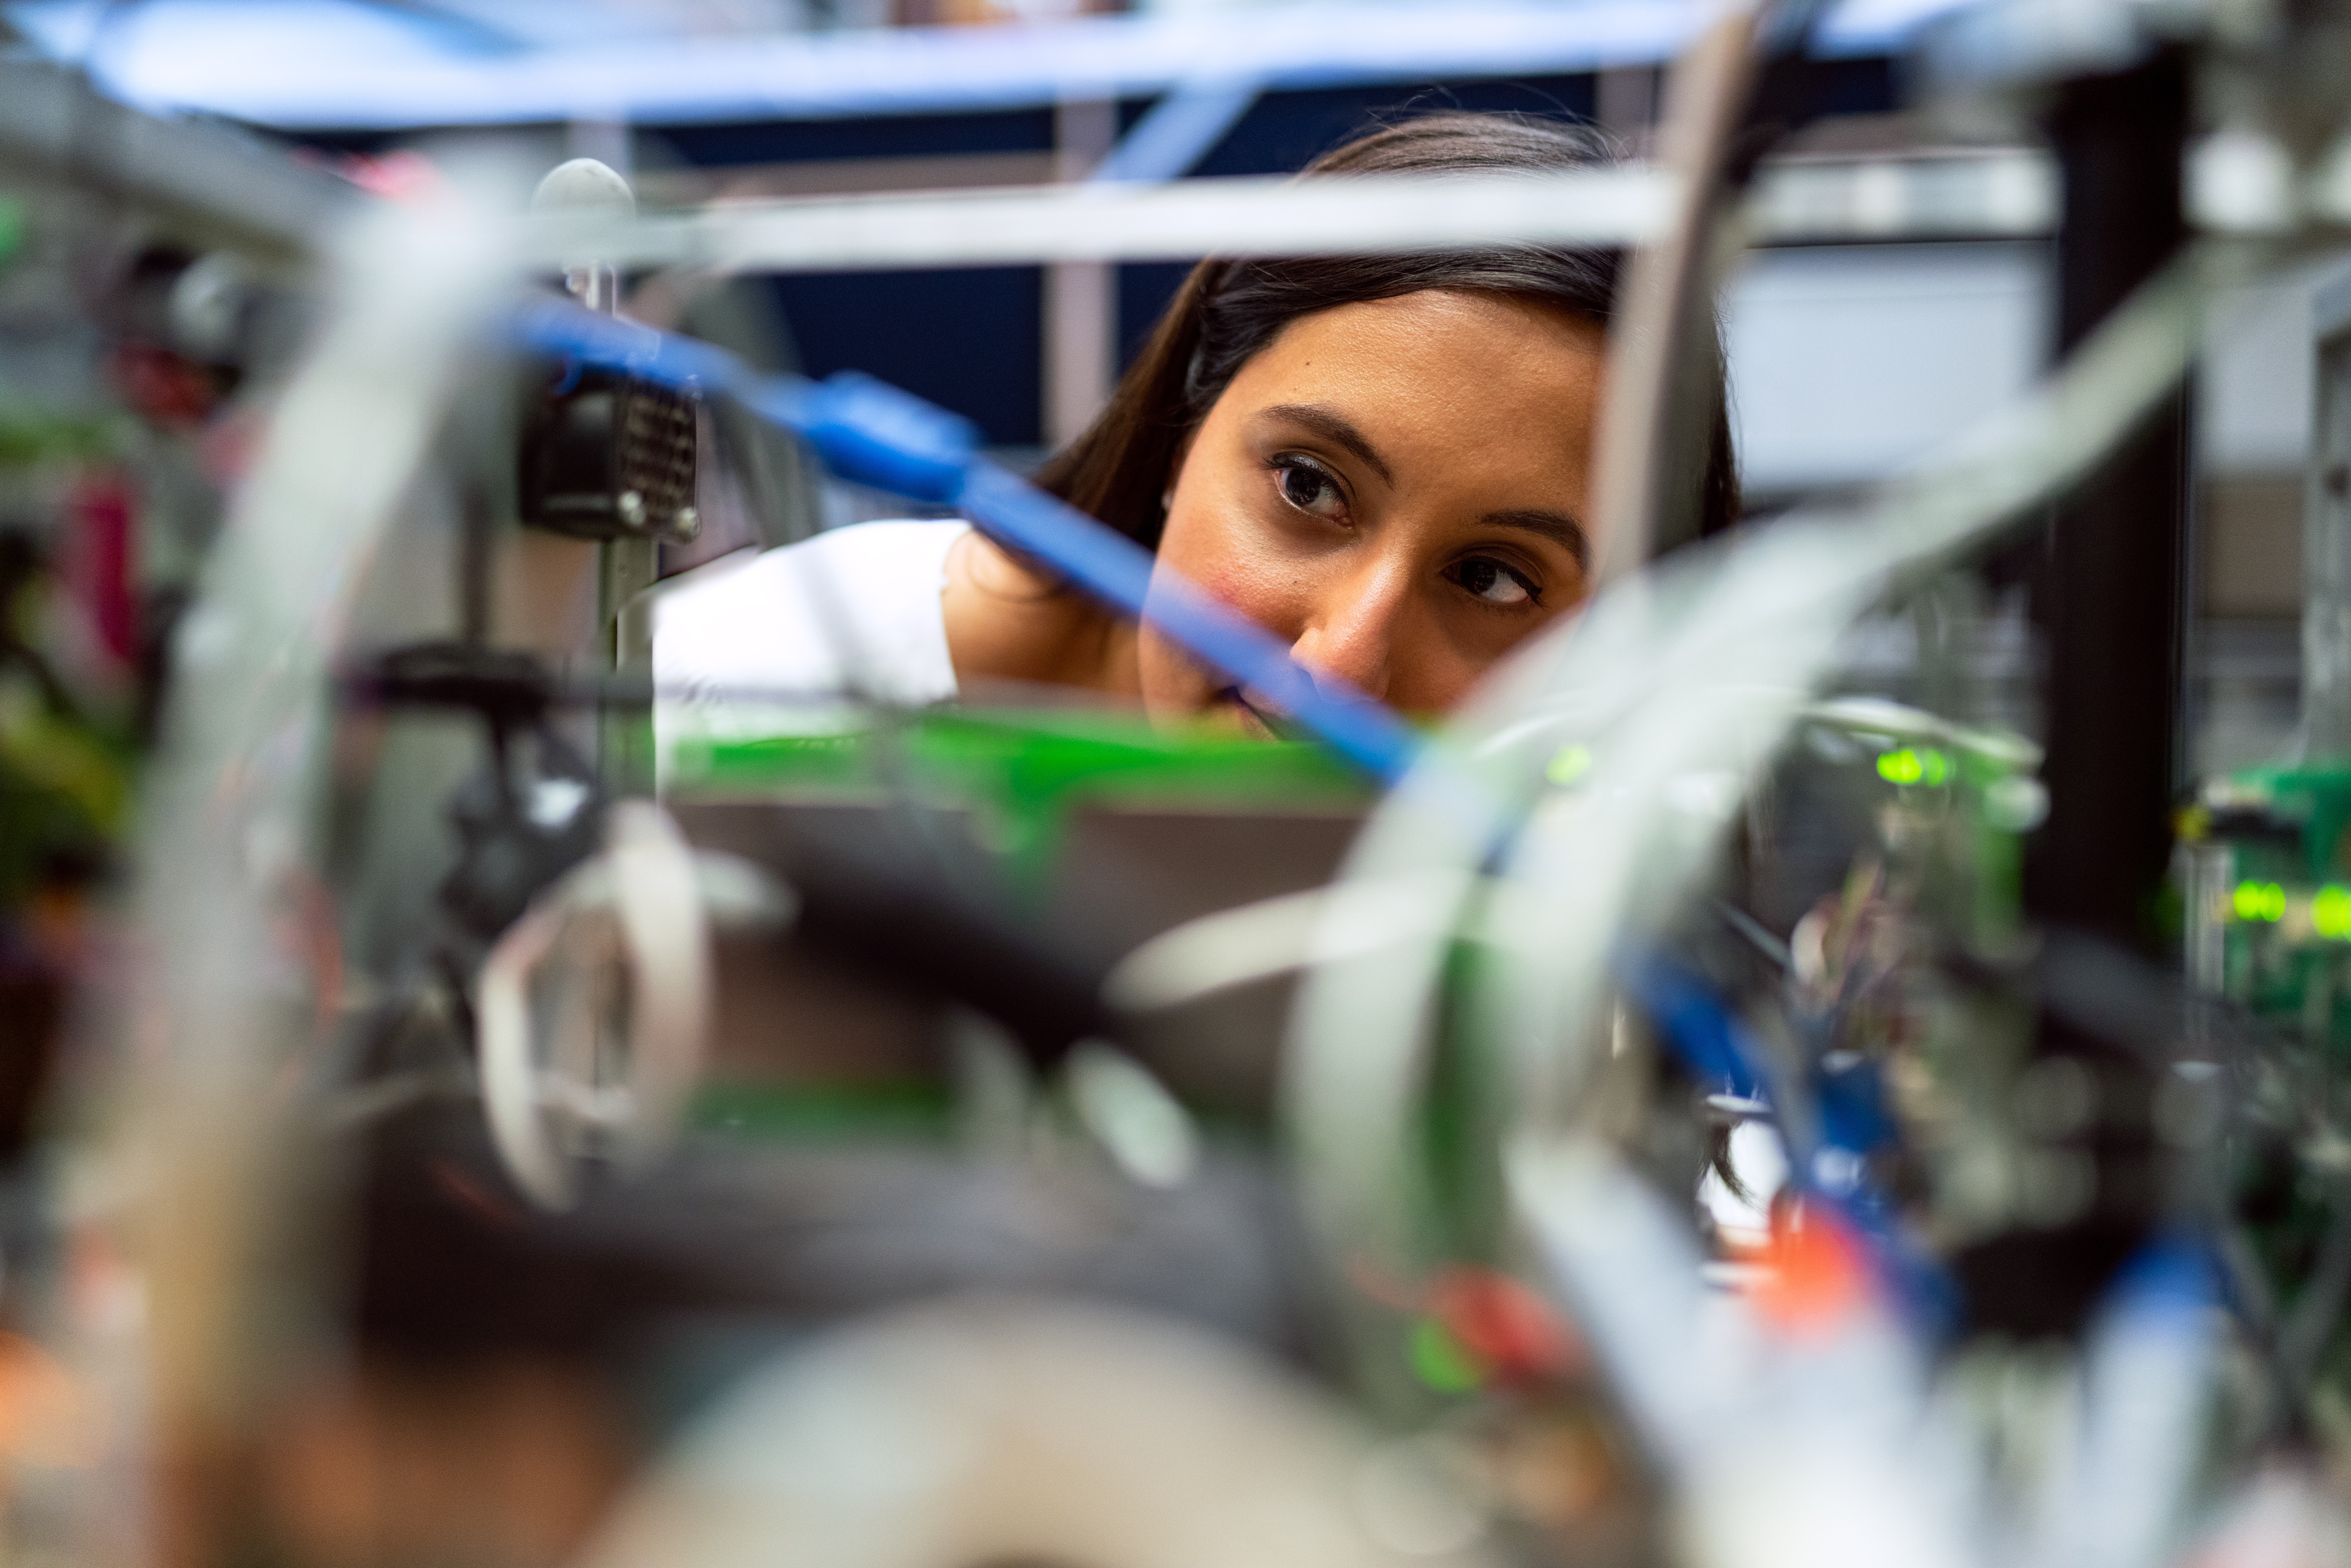 female computer science student looking at computer